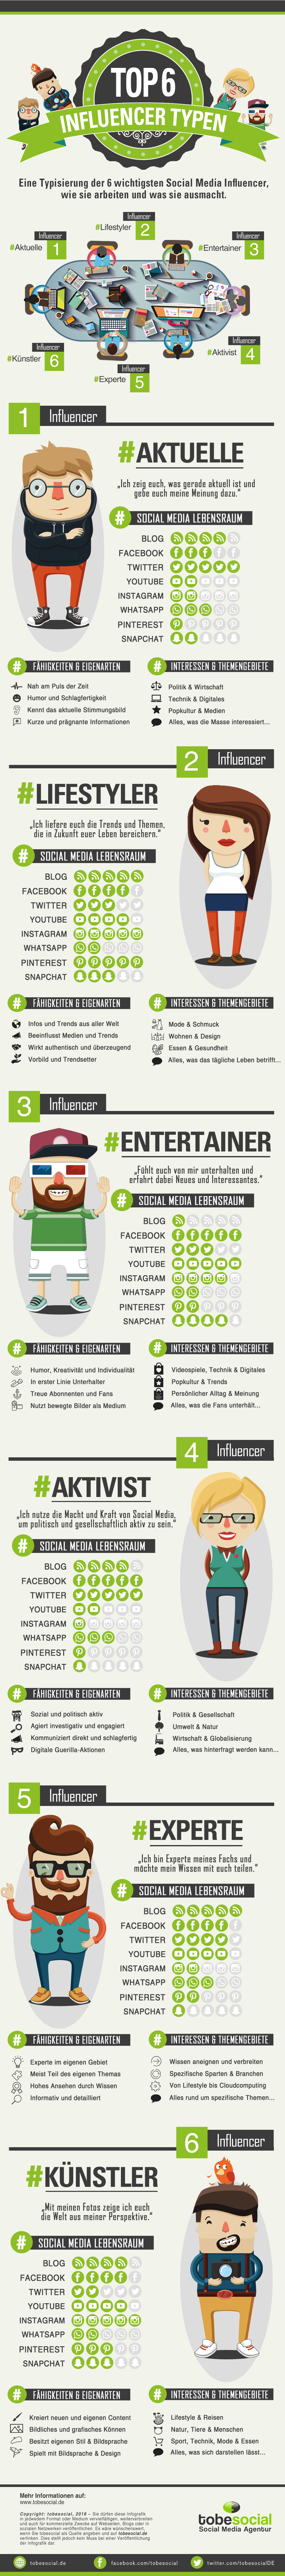 Influencer Marketing Infografik, Influencer Marketing Agentur